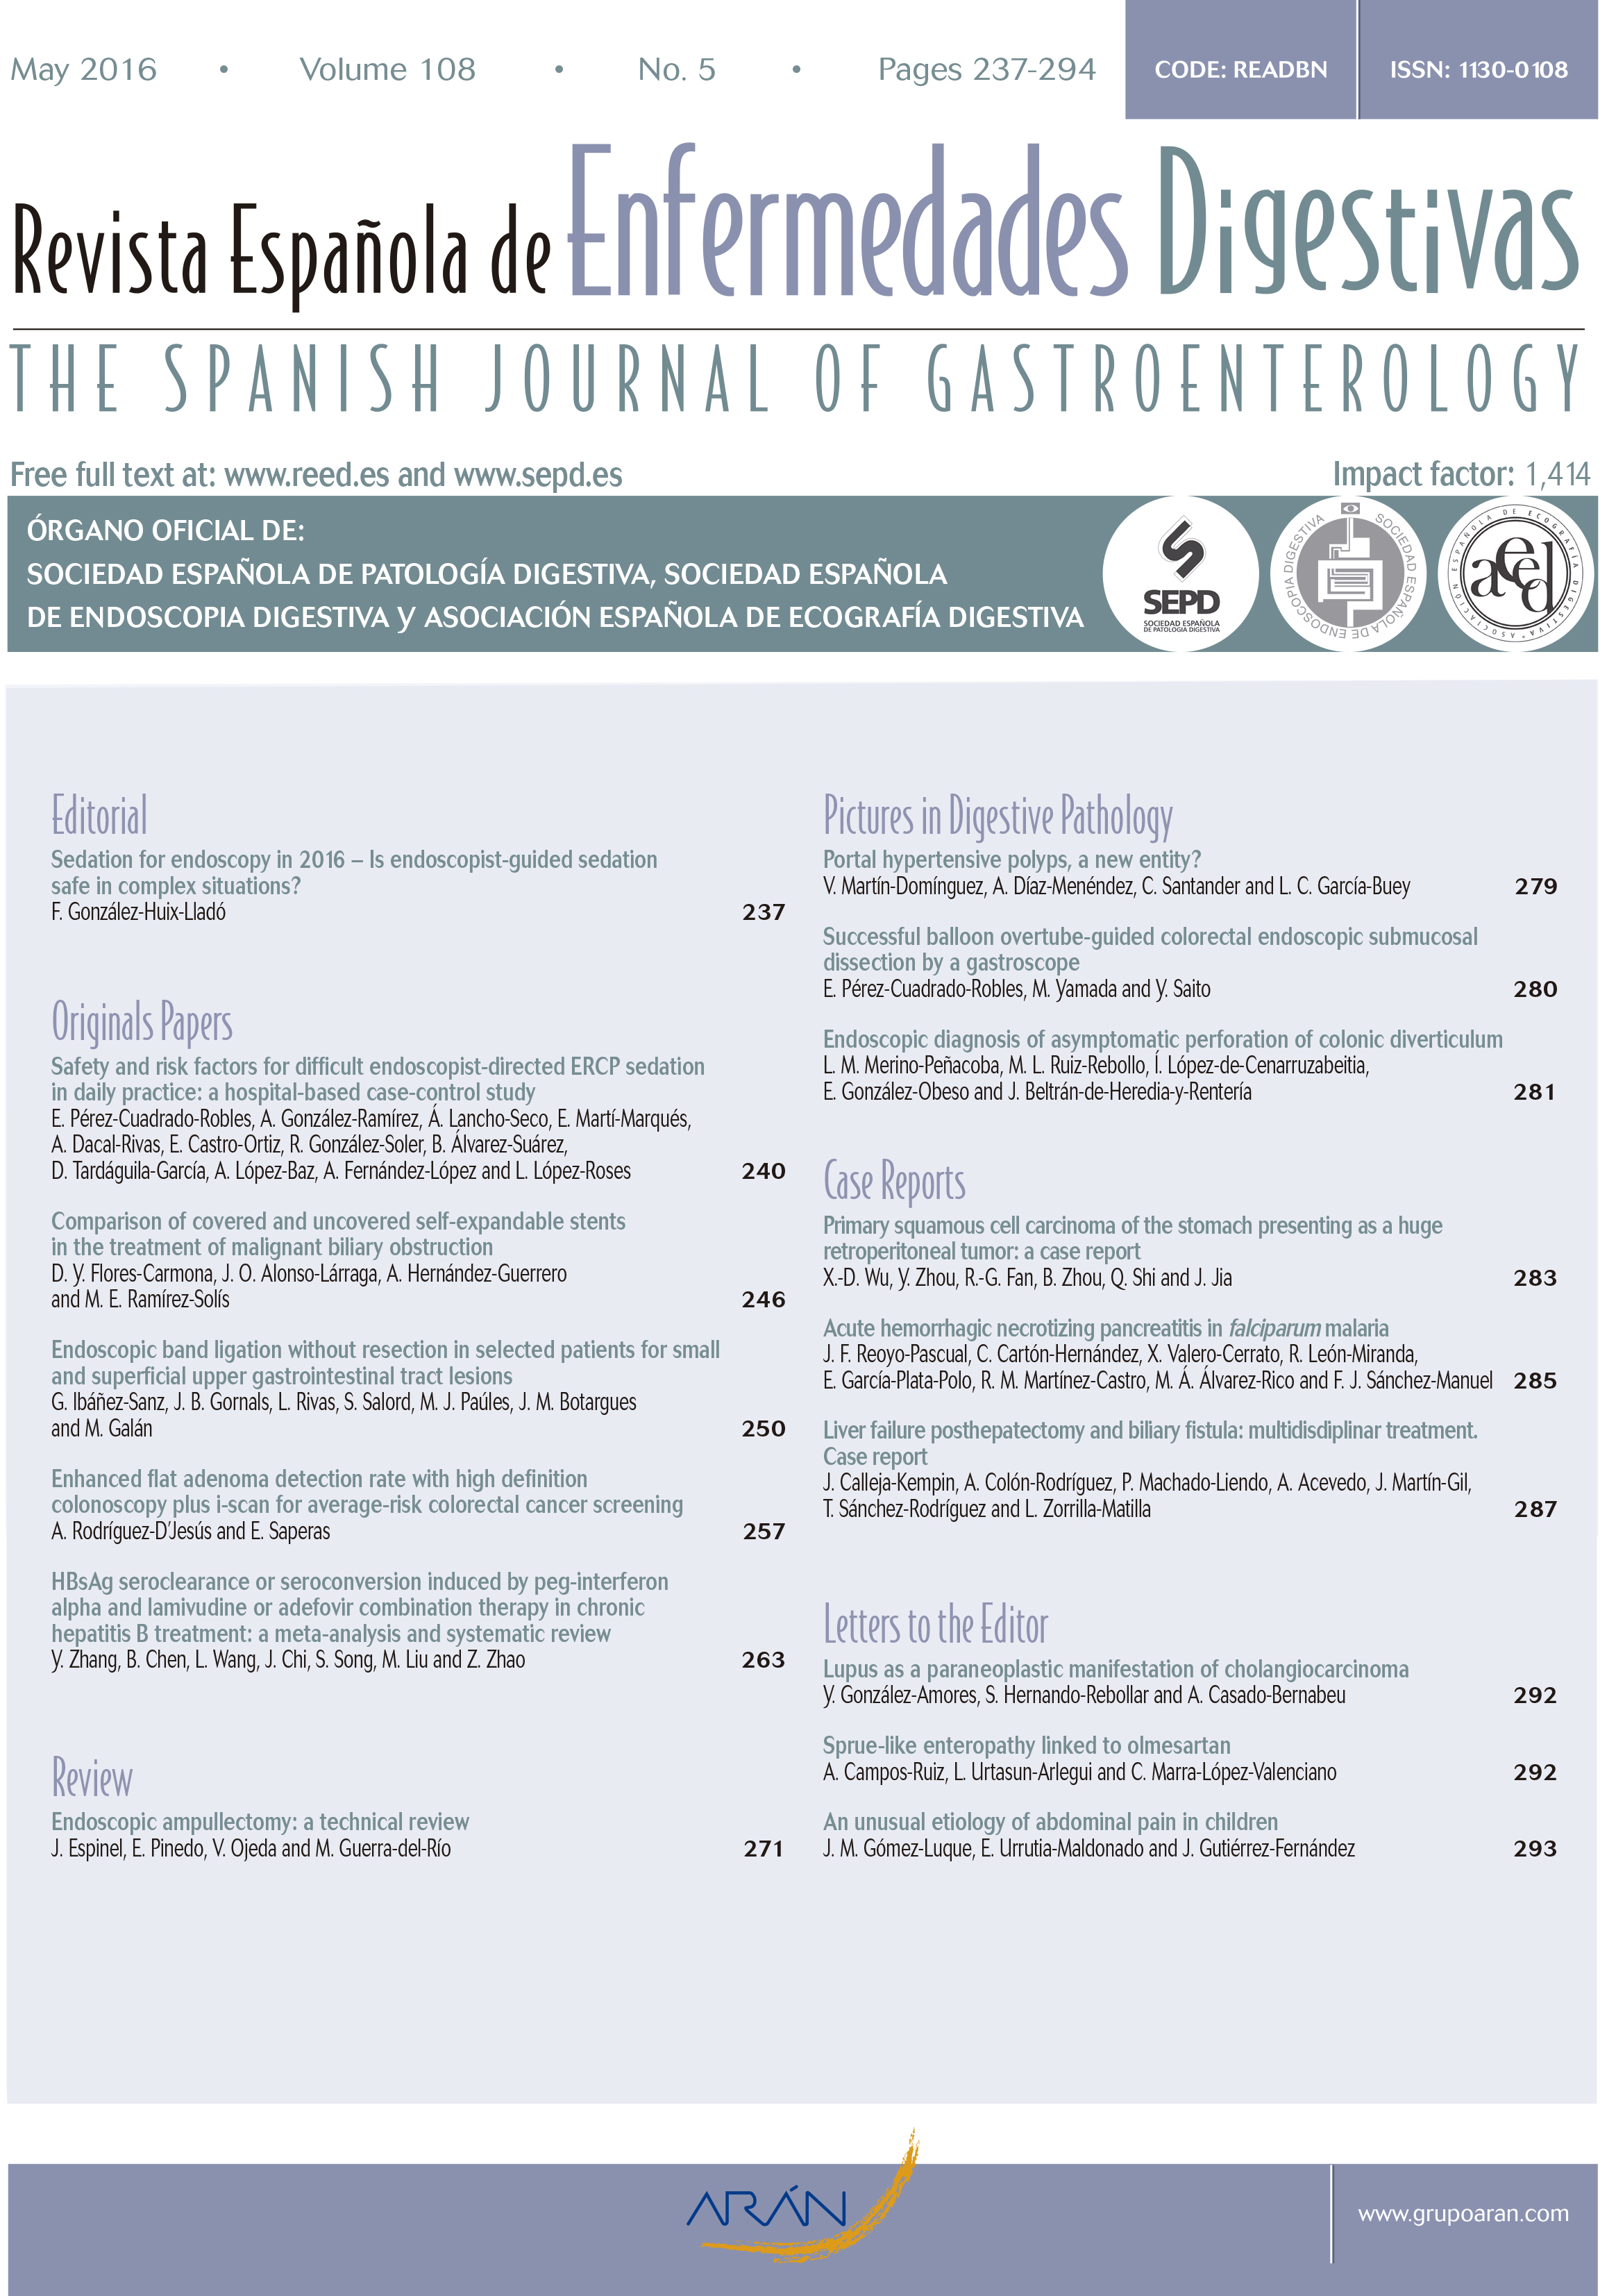 Publications - Current issue